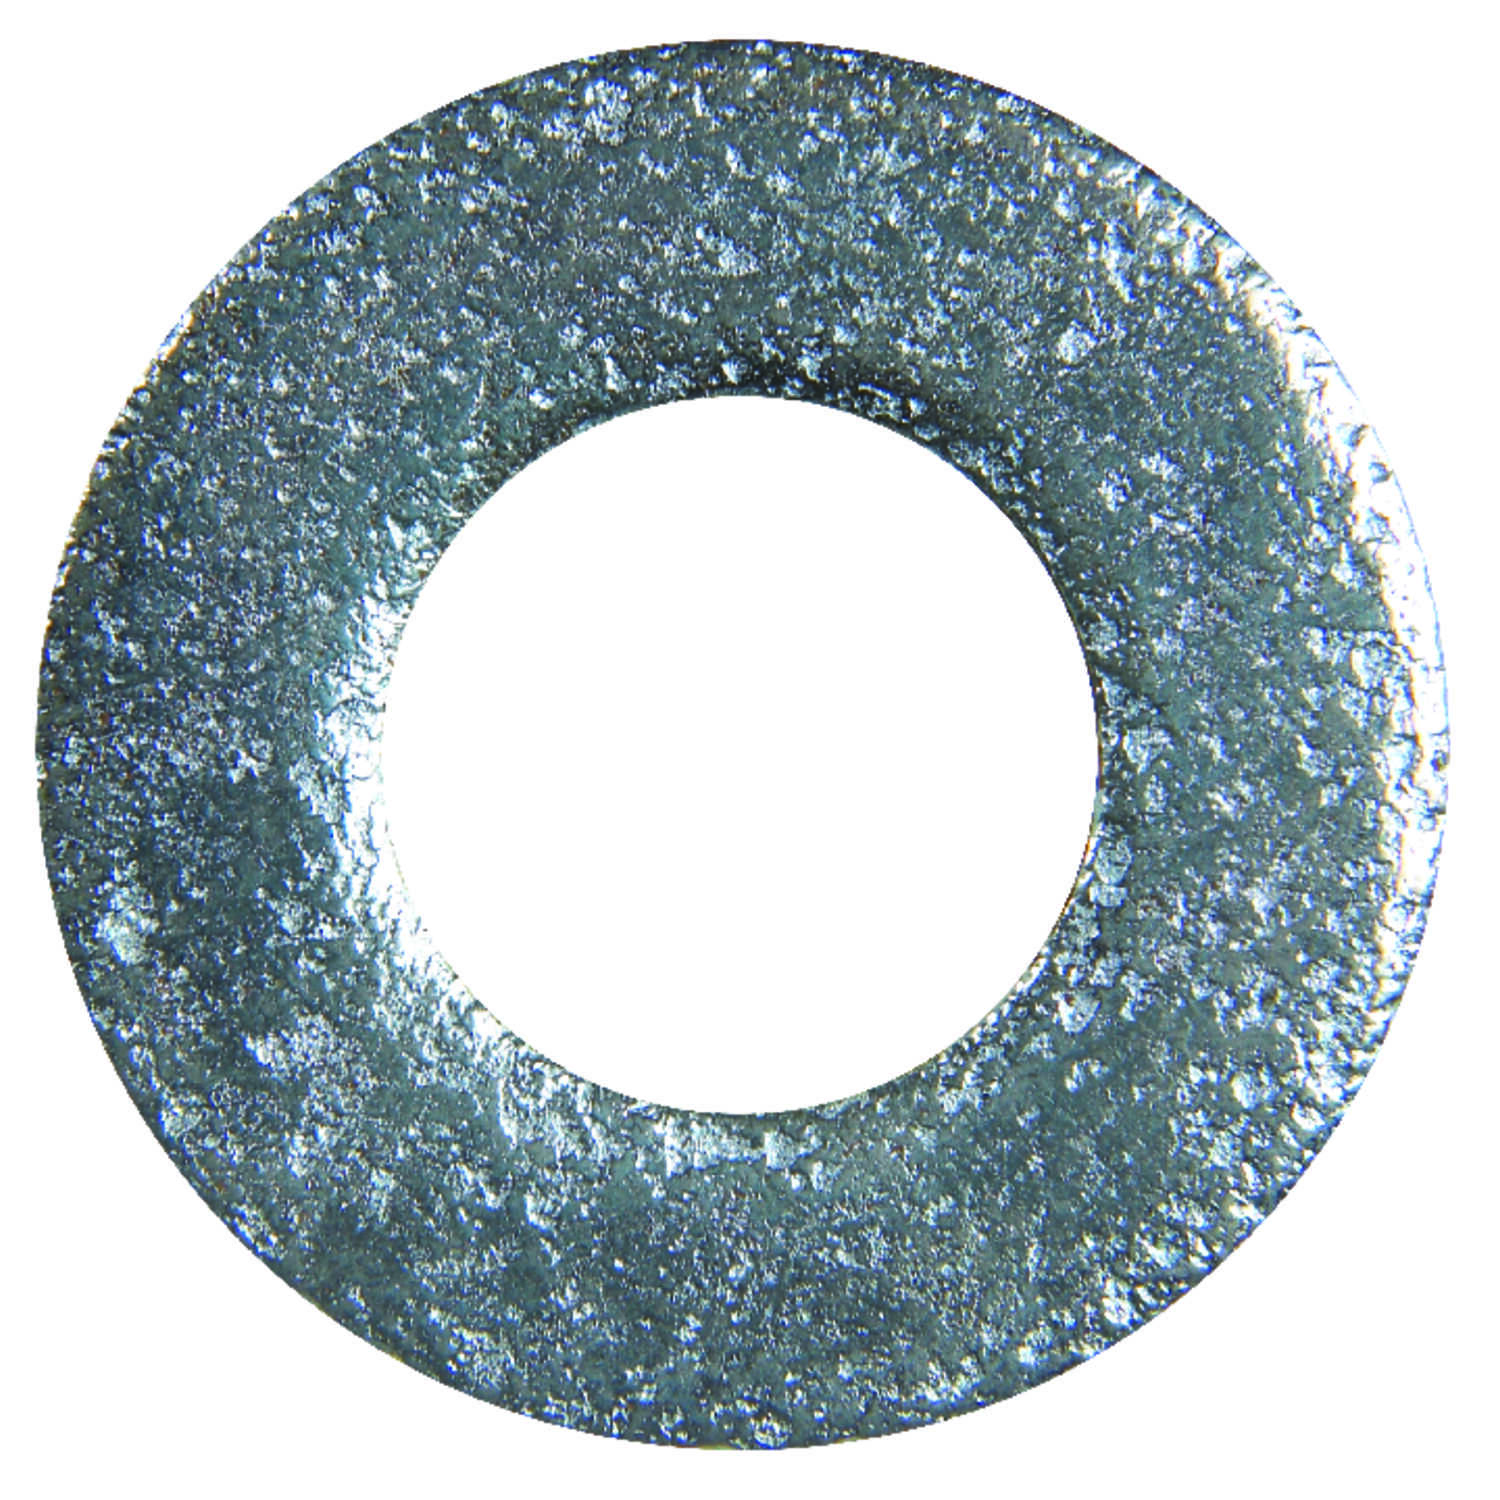 Hillman  Zinc-Plated  Steel  3/8 in. SAE Flat Washer  100 pk